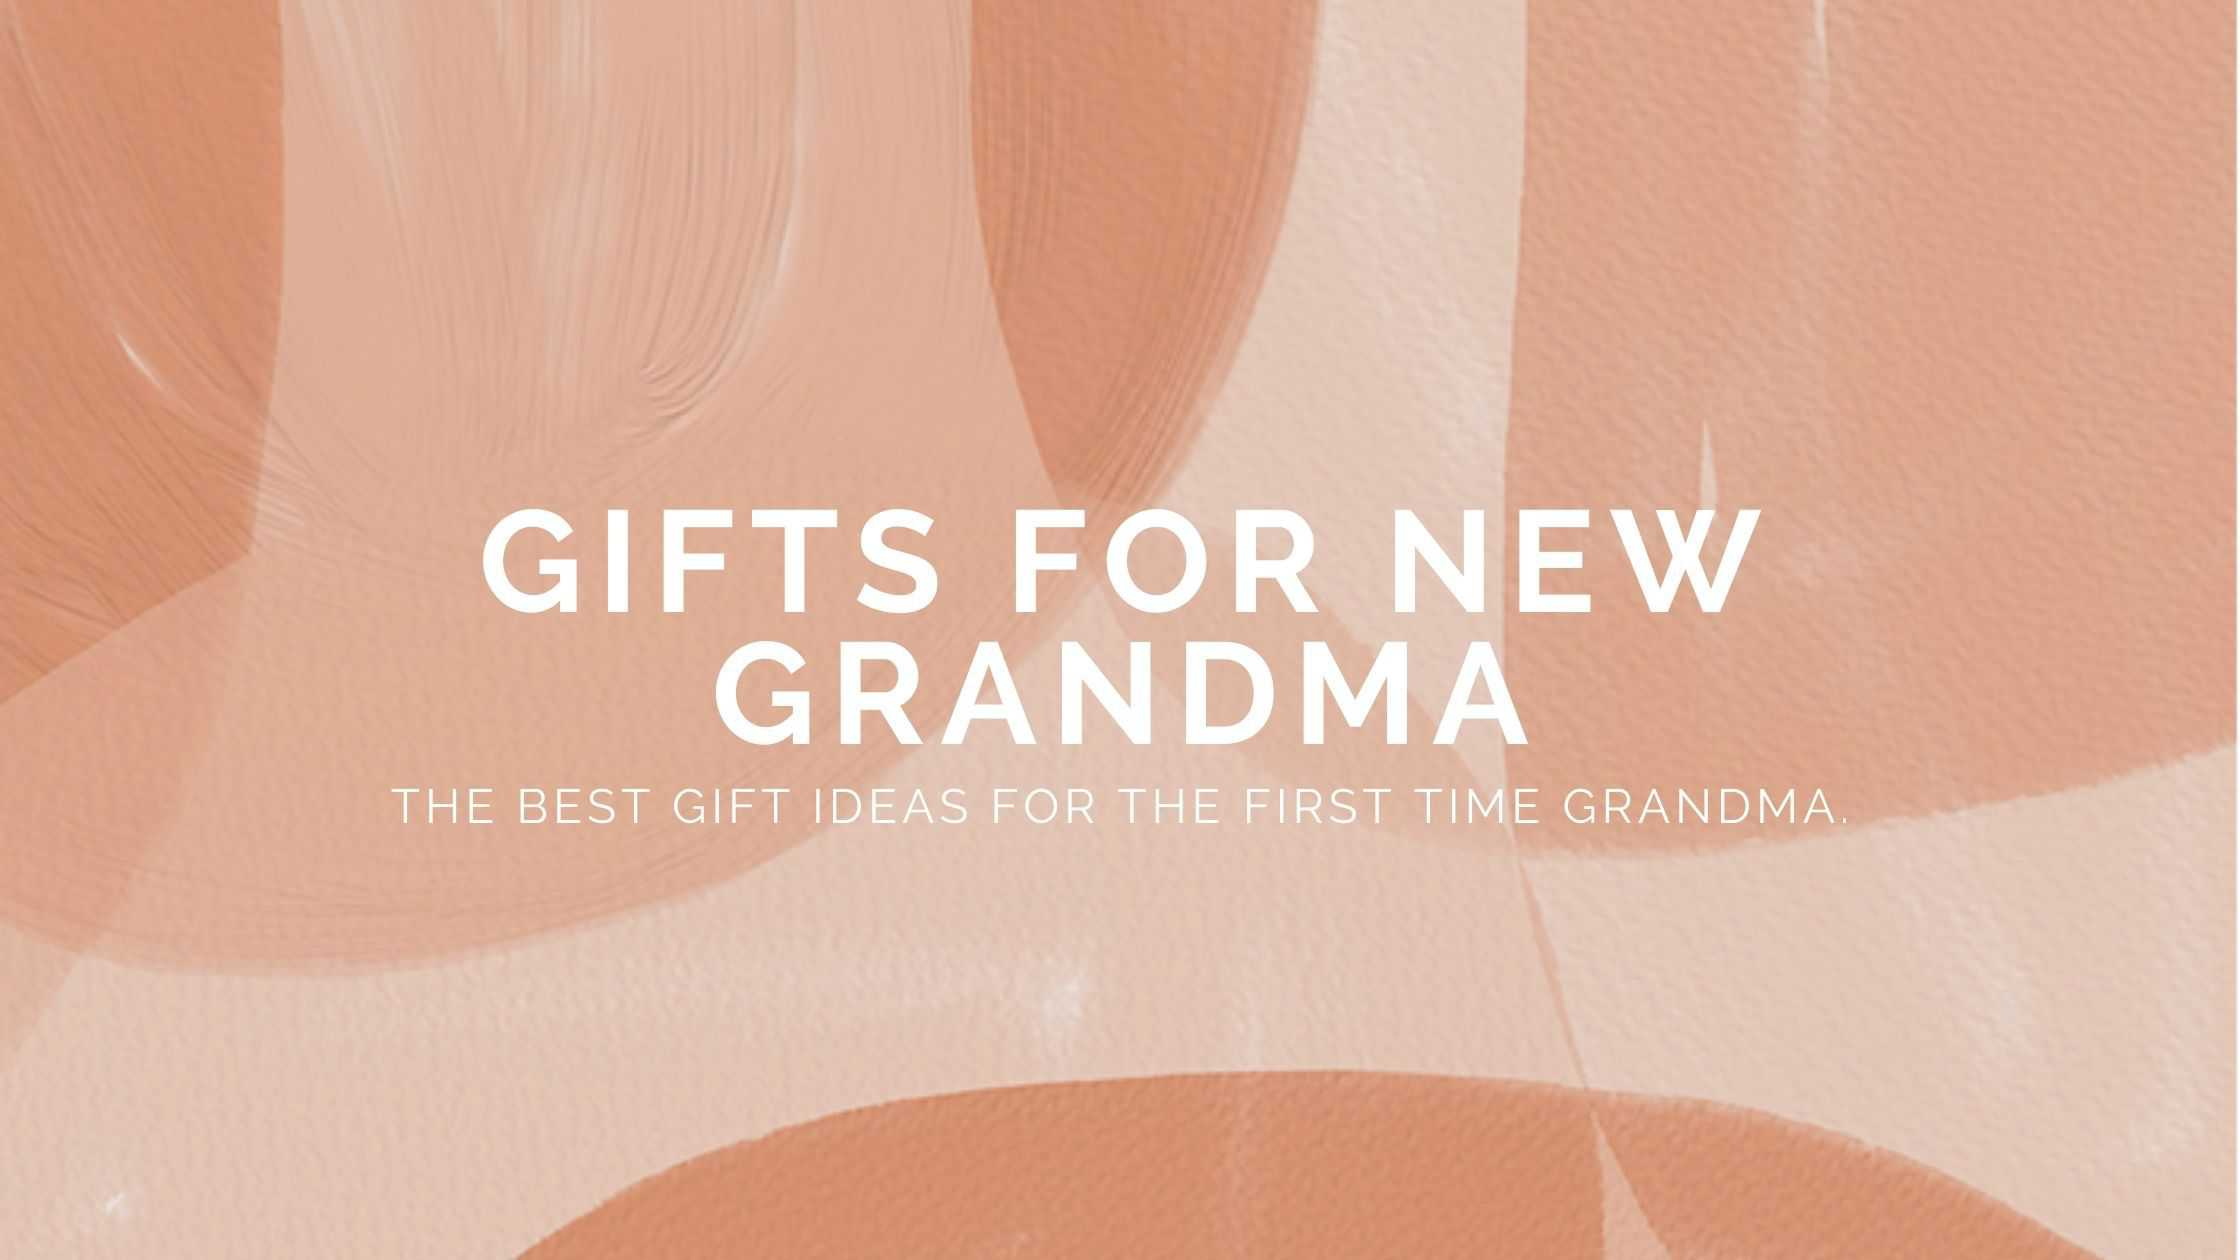 20+ Gifts for New Grandma to Celebrate Her Joy (2021)